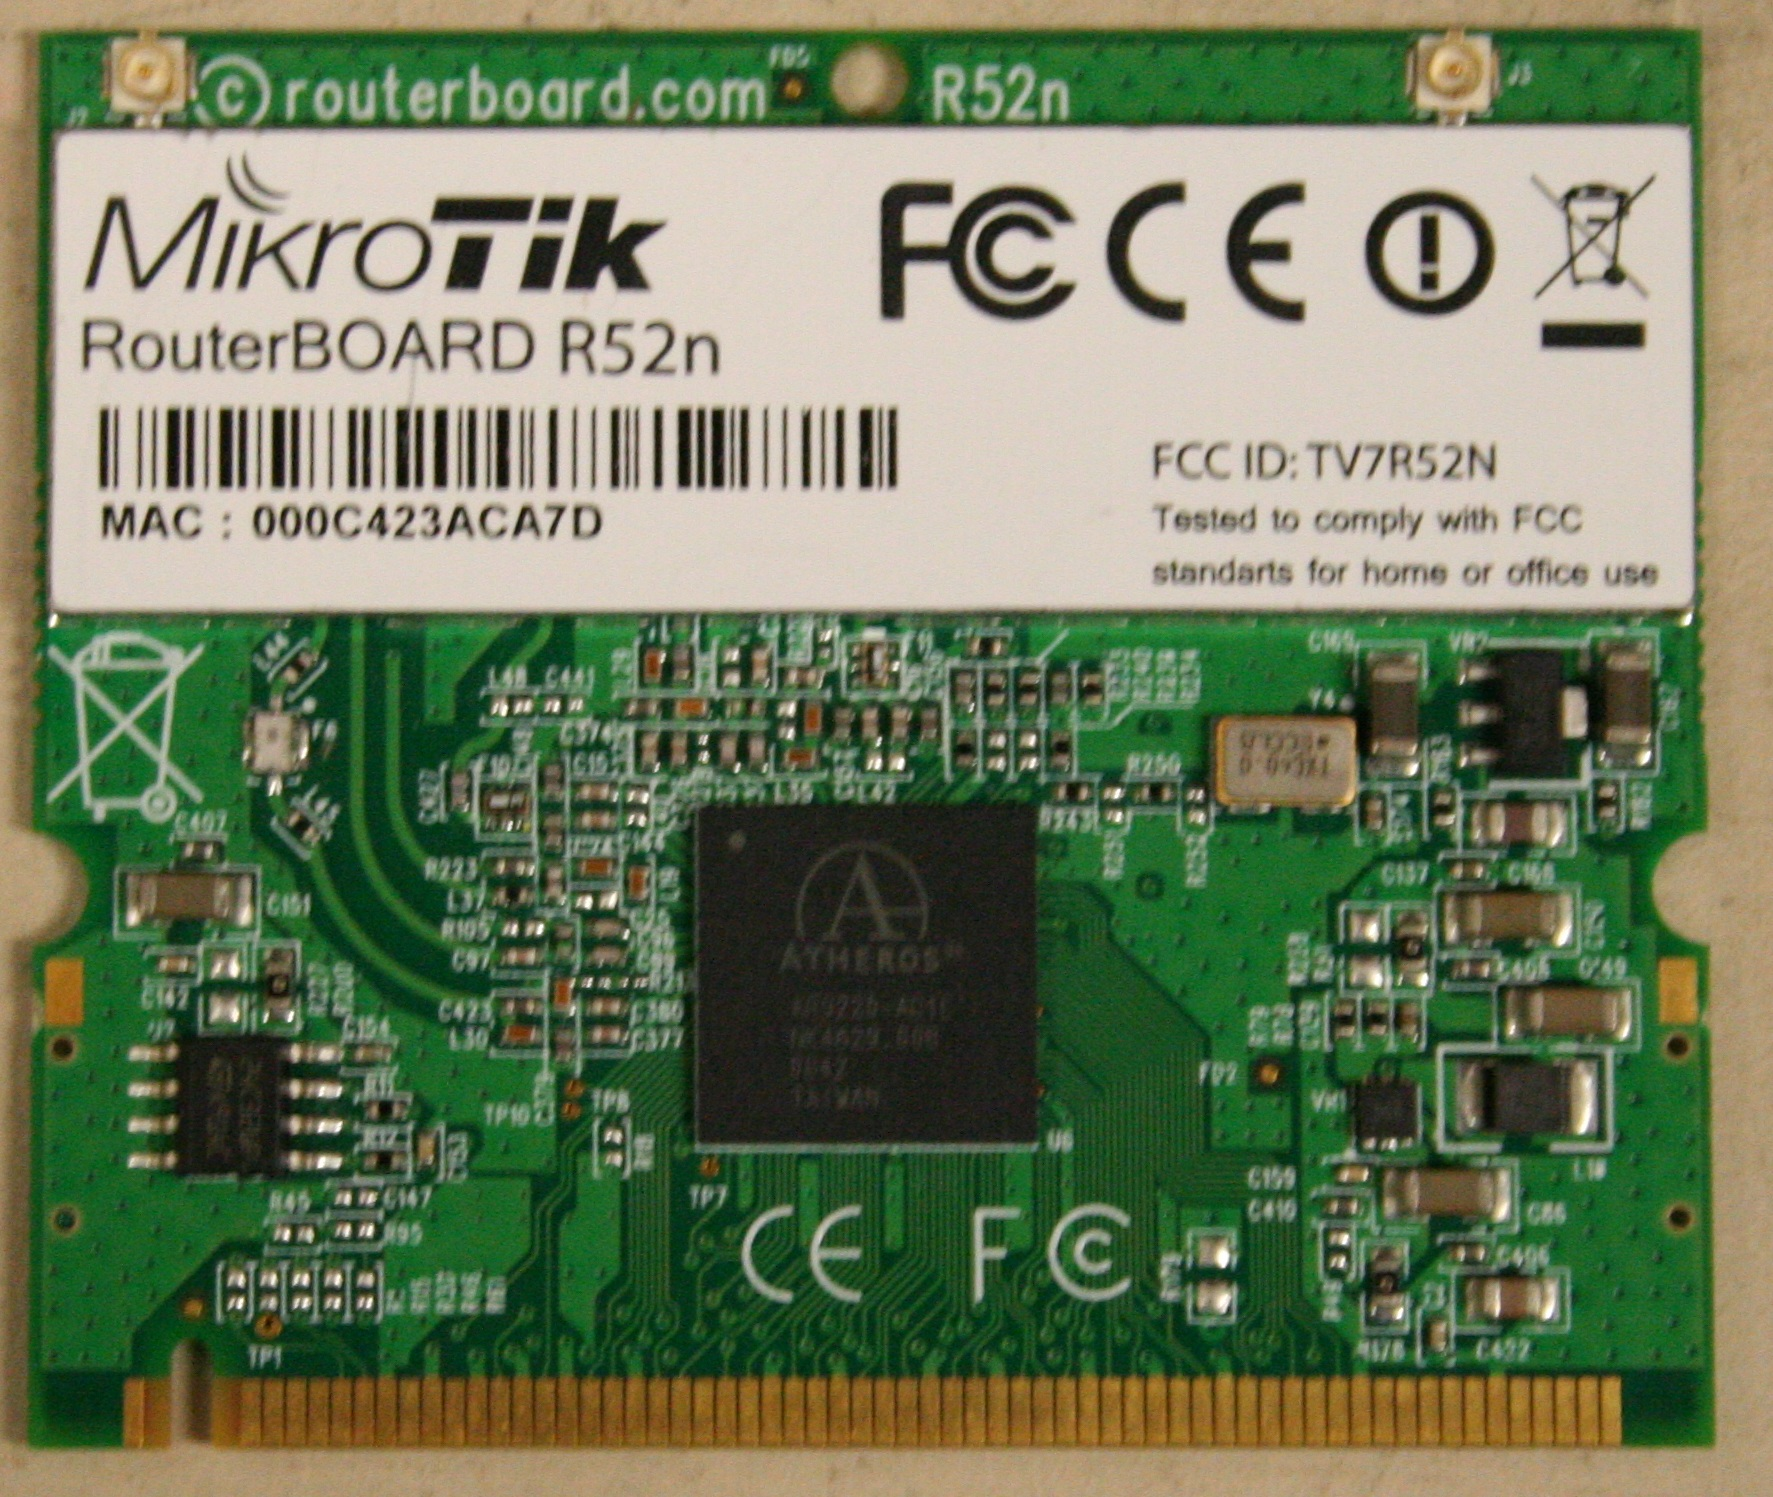 Atheros 9220 based cards